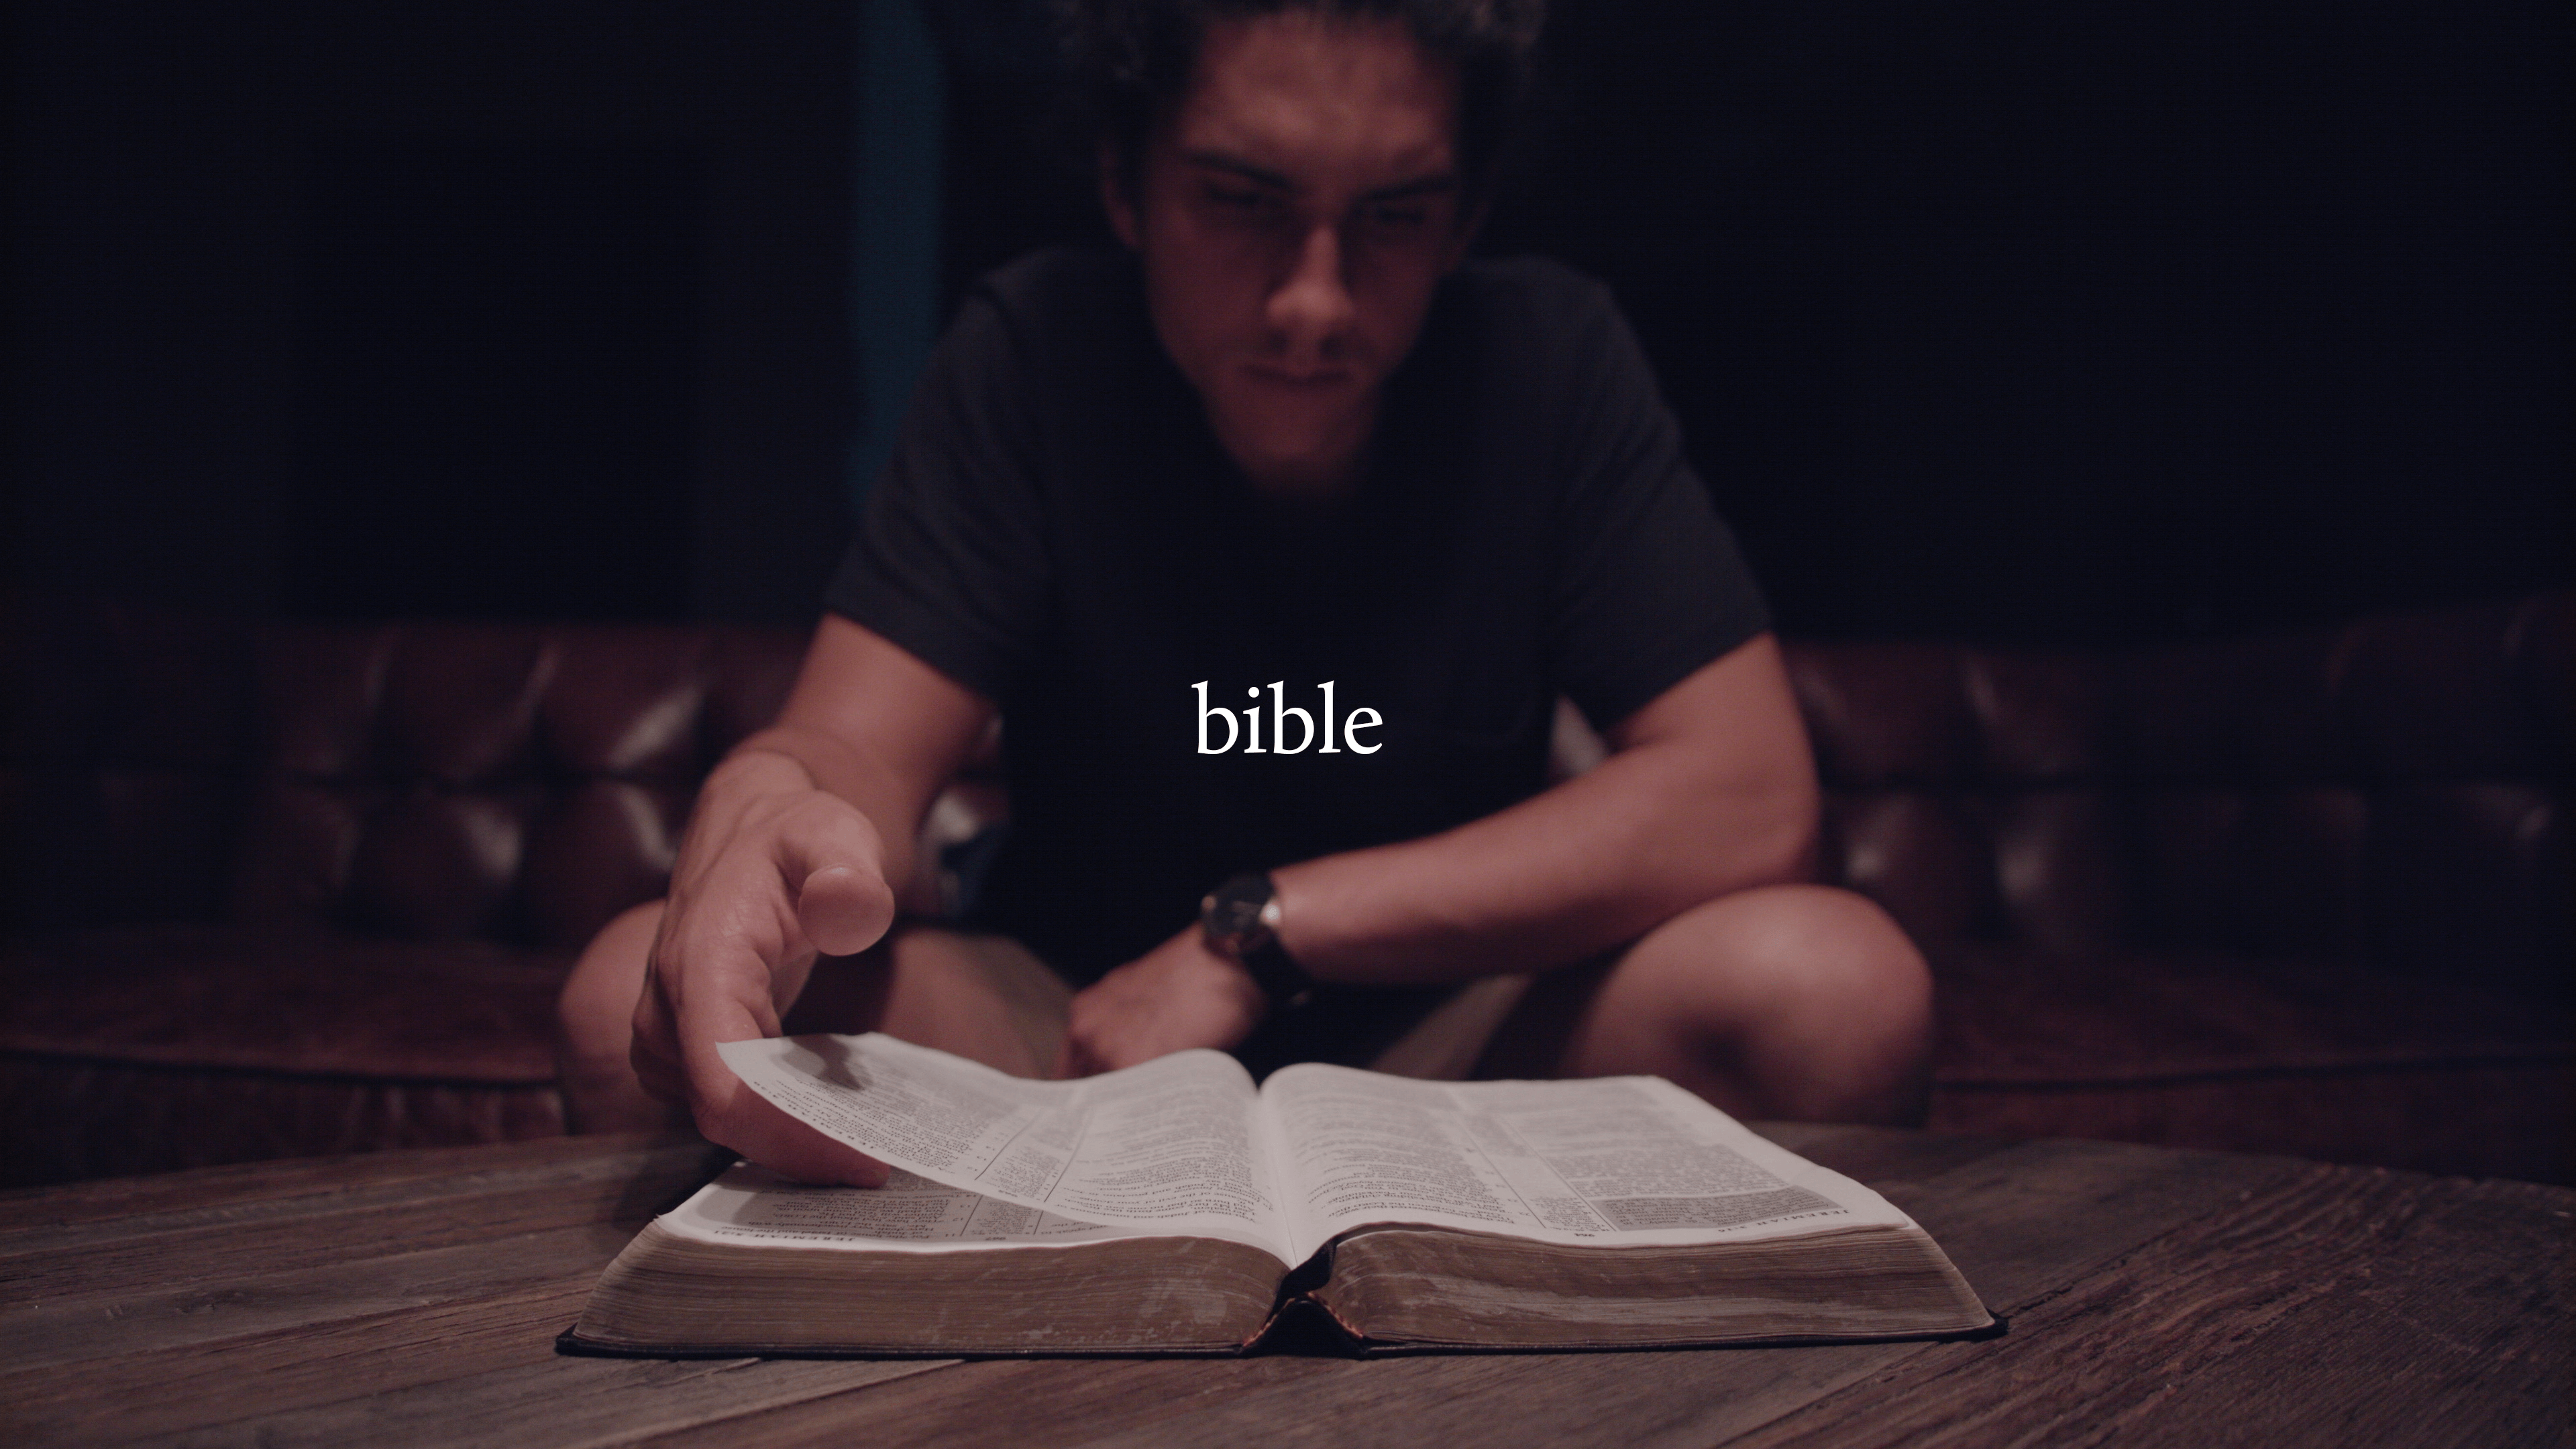 Sermon Series Ideas #1: Bible